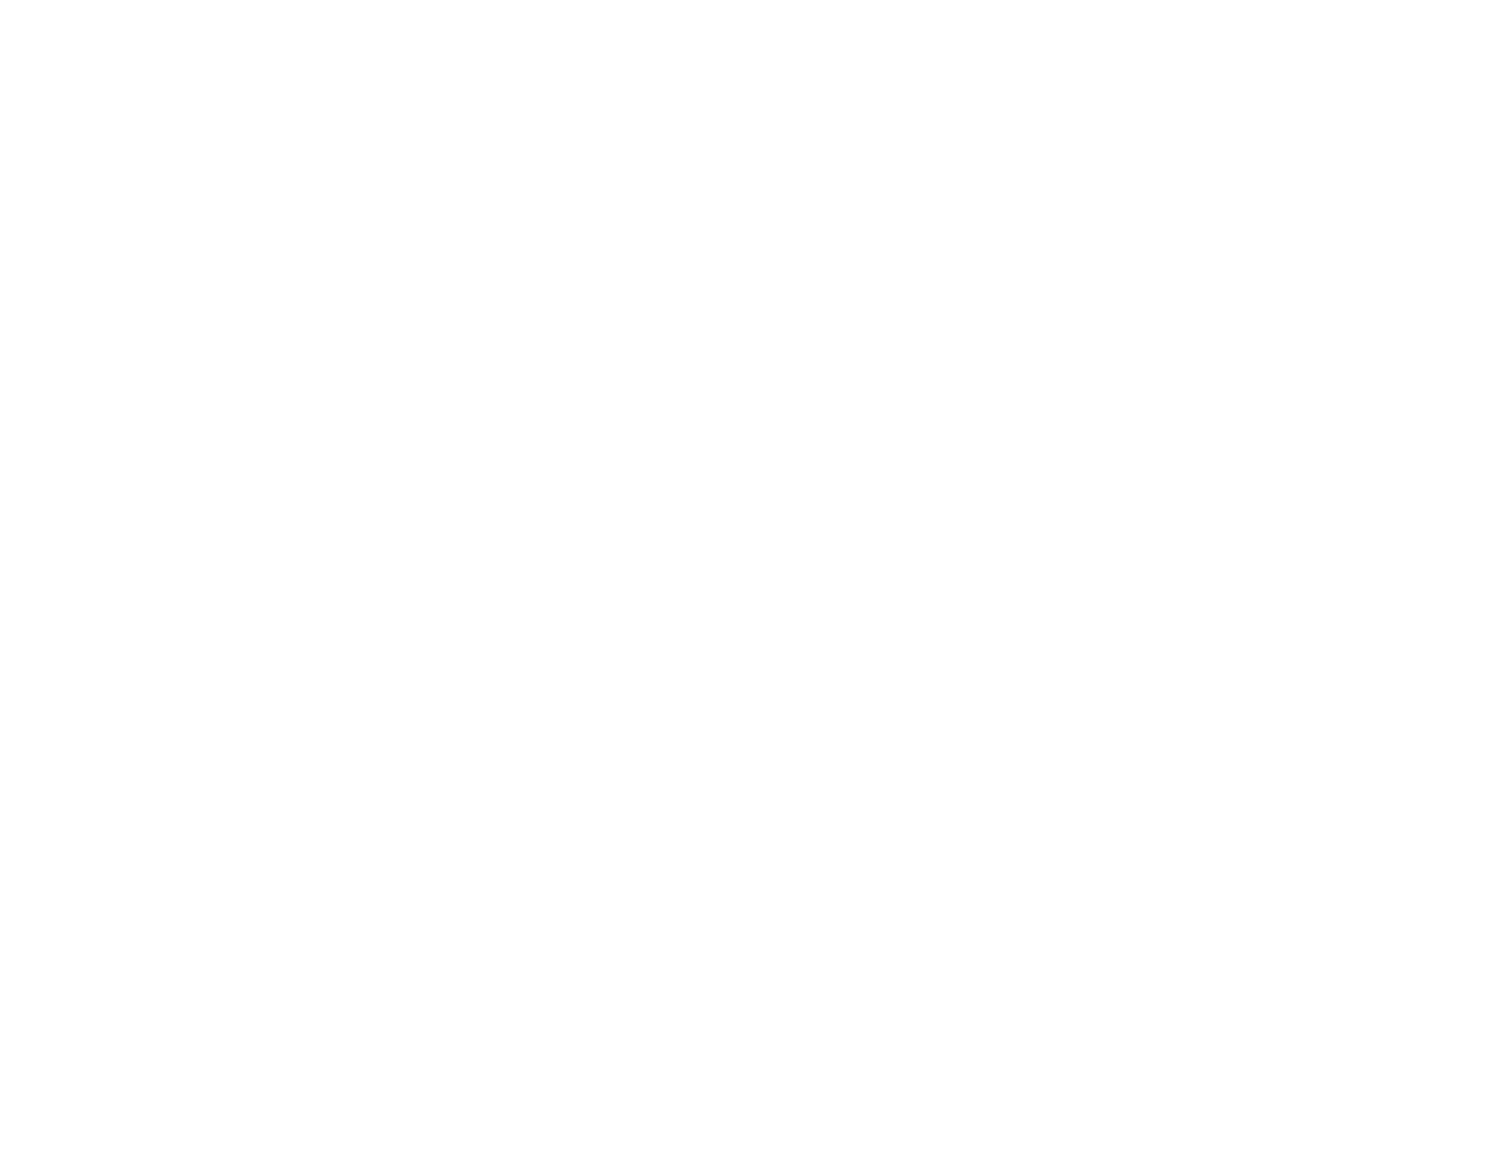 Gray Consulting